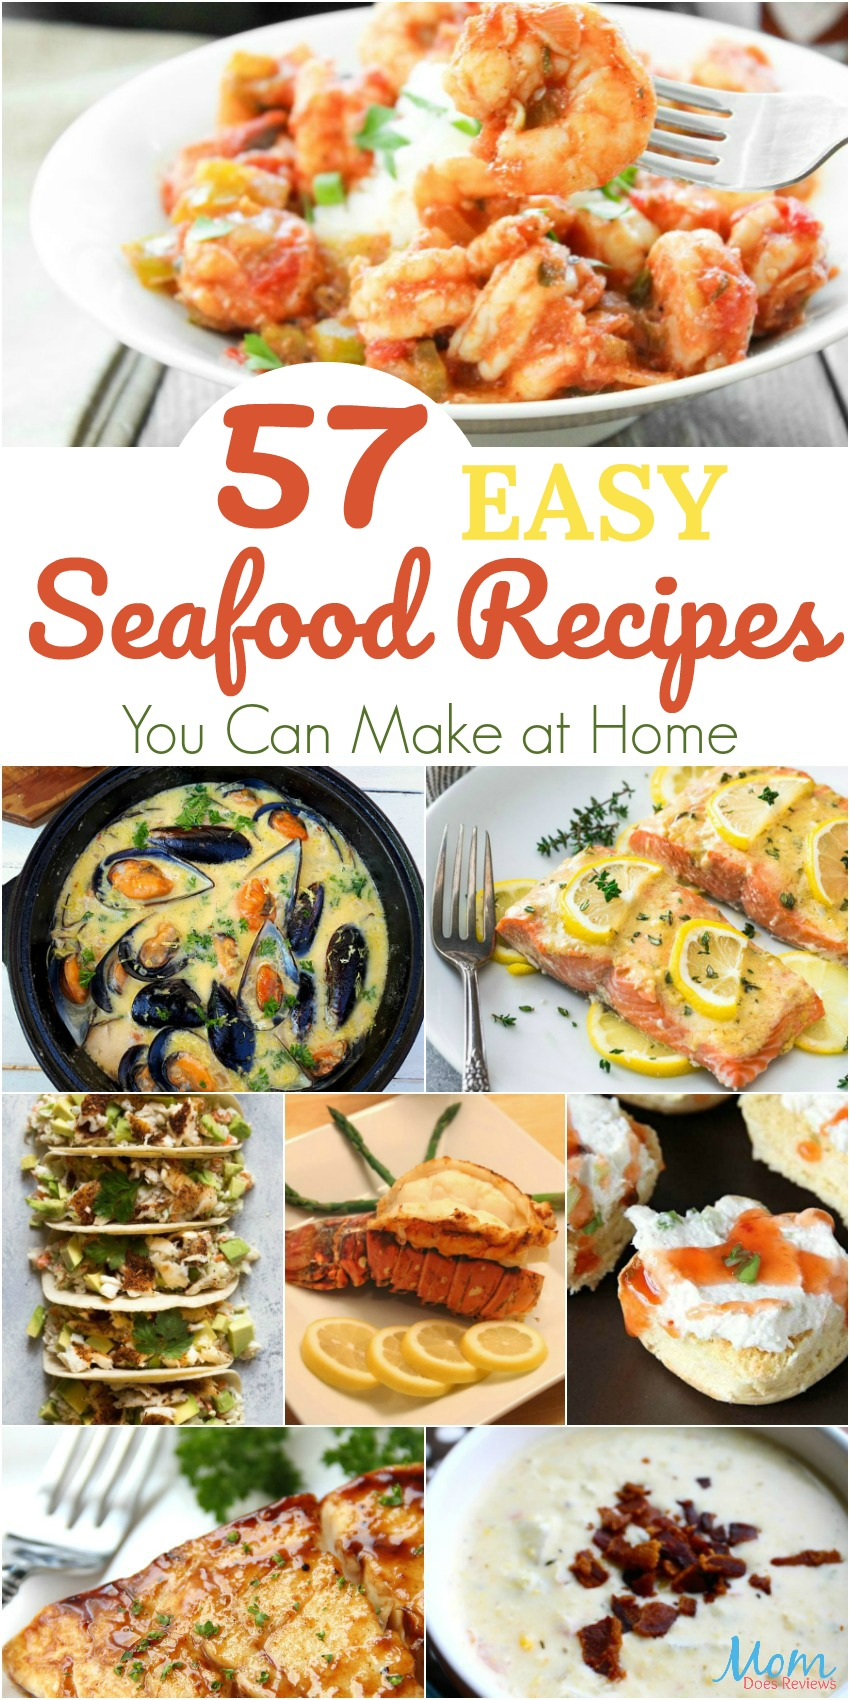 57 Easy Seafood Recipes You Can Make at Home #recipes #food #foodie #seafood #getinmybelly #healthyfood